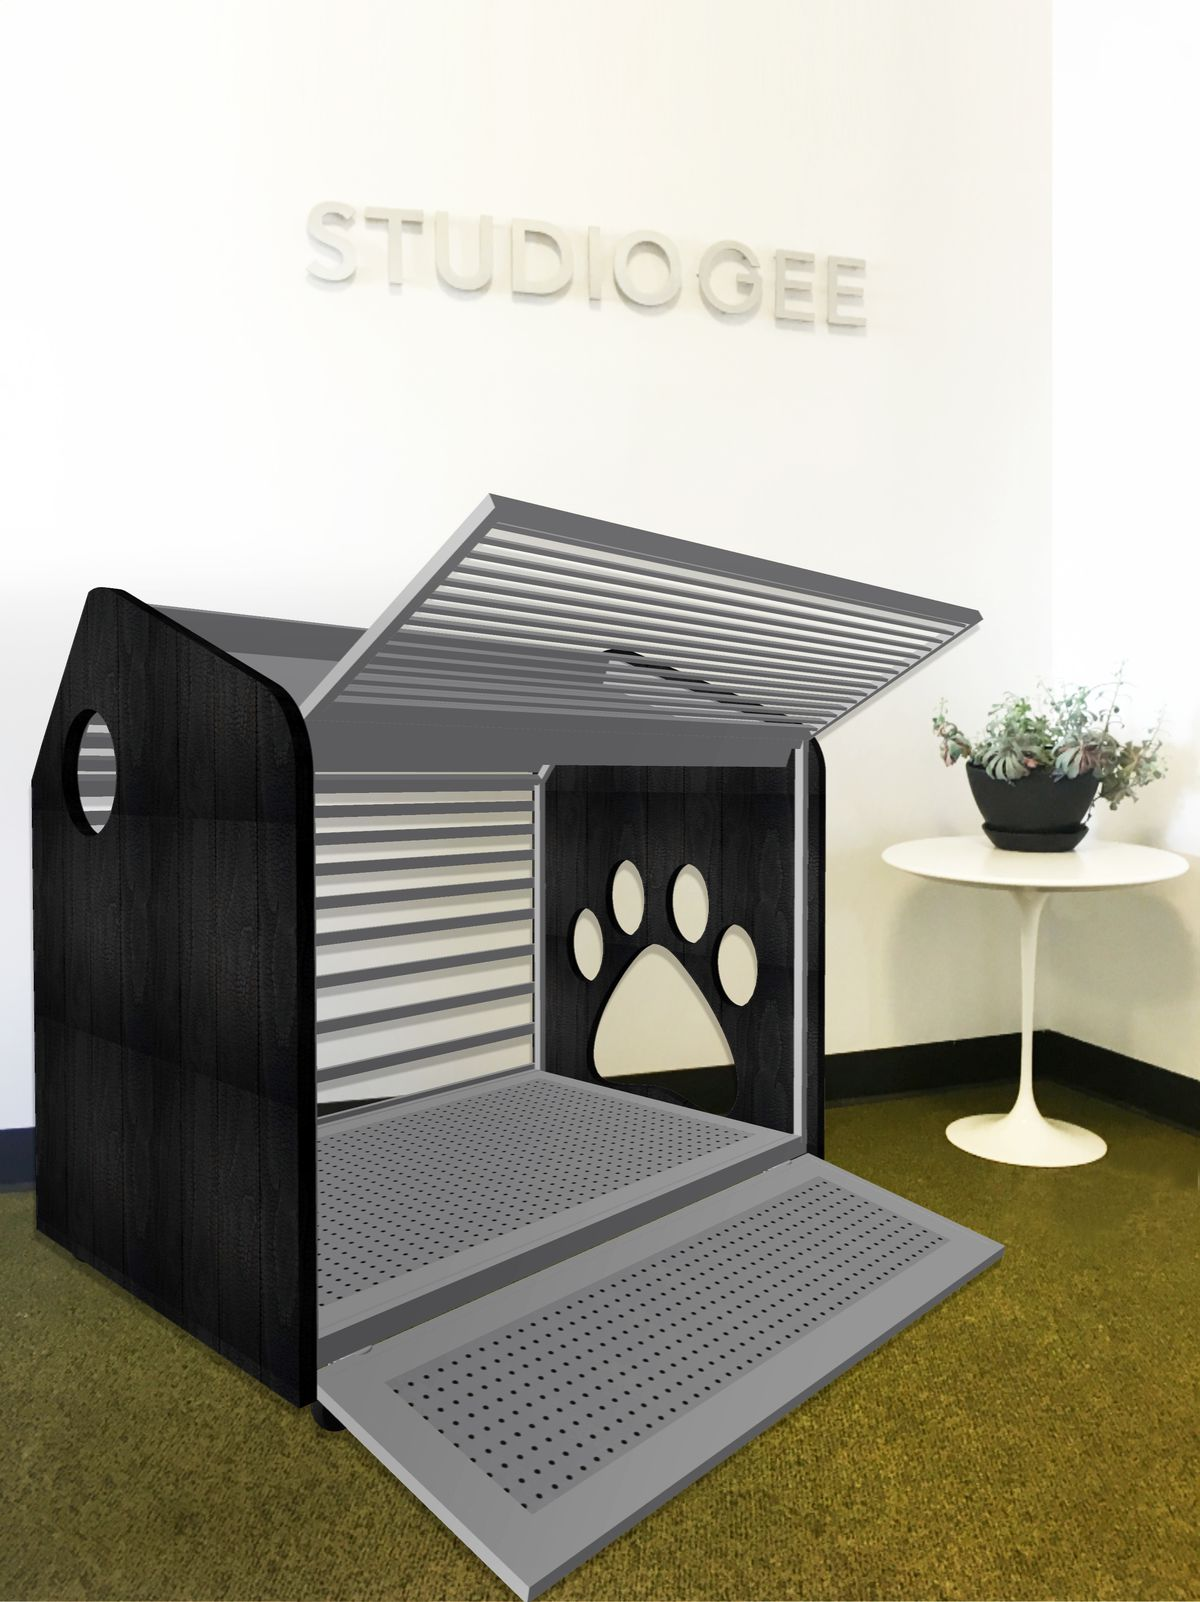 An interior photo of a crate-like container with walls on metal one side that open to become a ramp and an awning-type structure. Black metal walls have perforations shaped like dog paws.